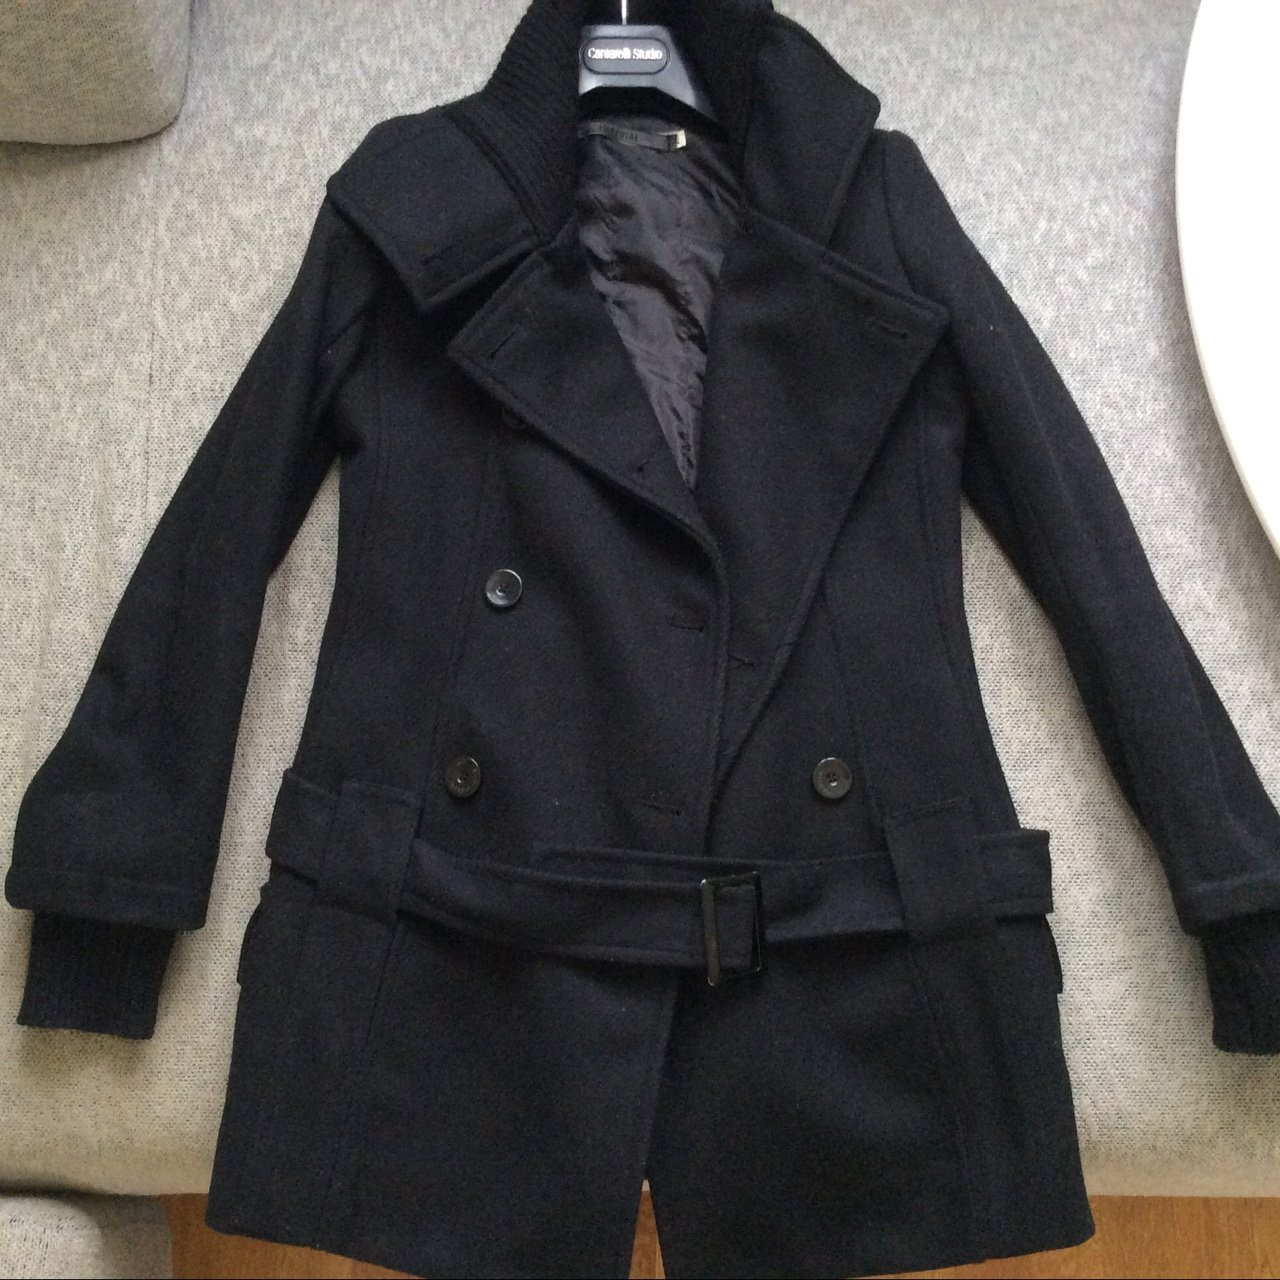 Cappotto Imperial nero tg XS ff8eac03717f